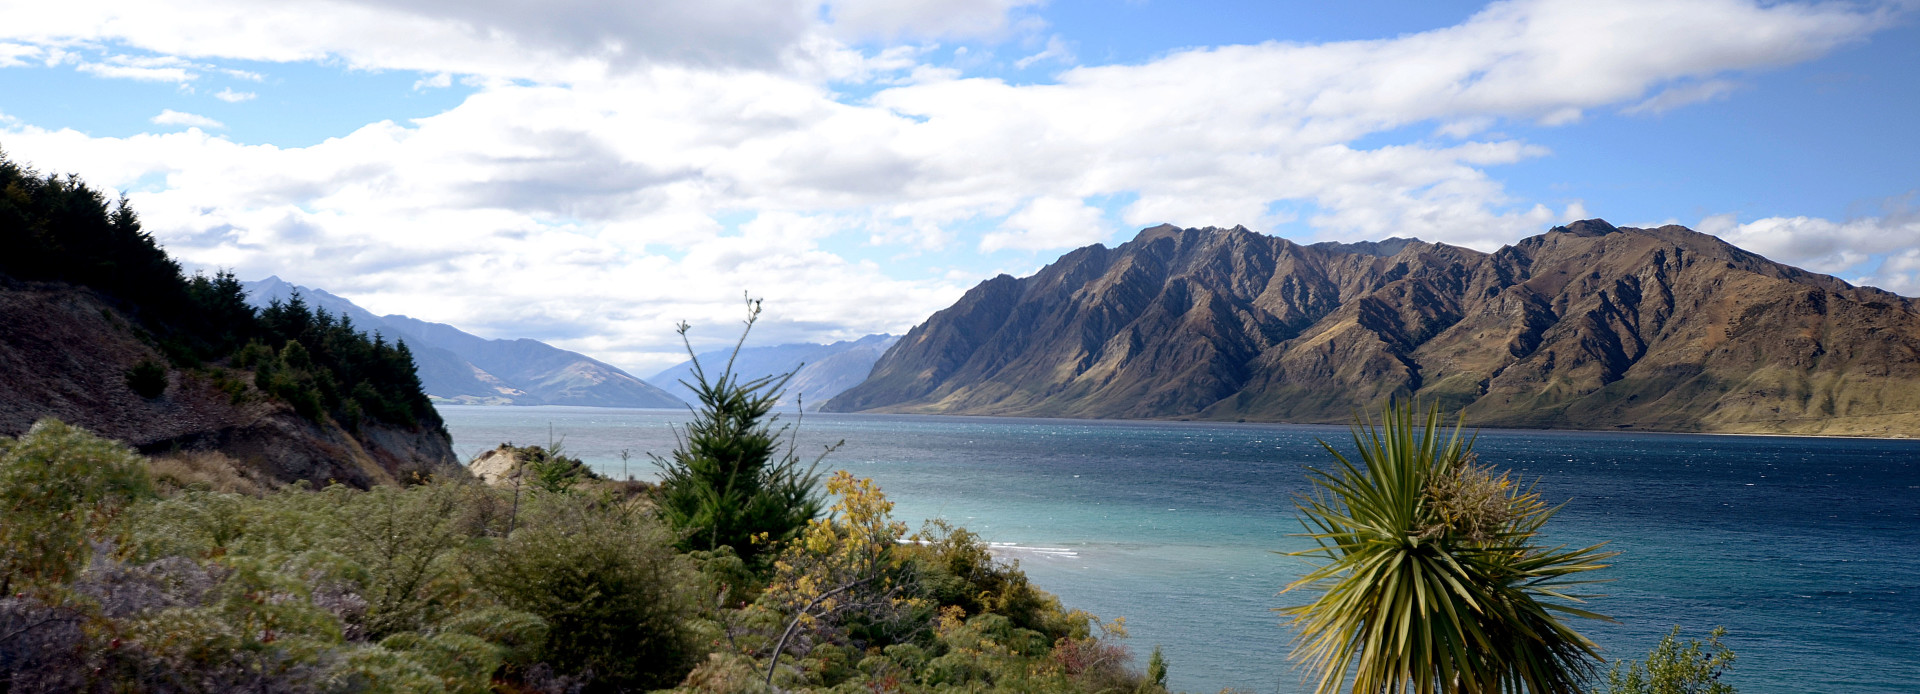 Neuseeland Fotostop am Lake Hawea